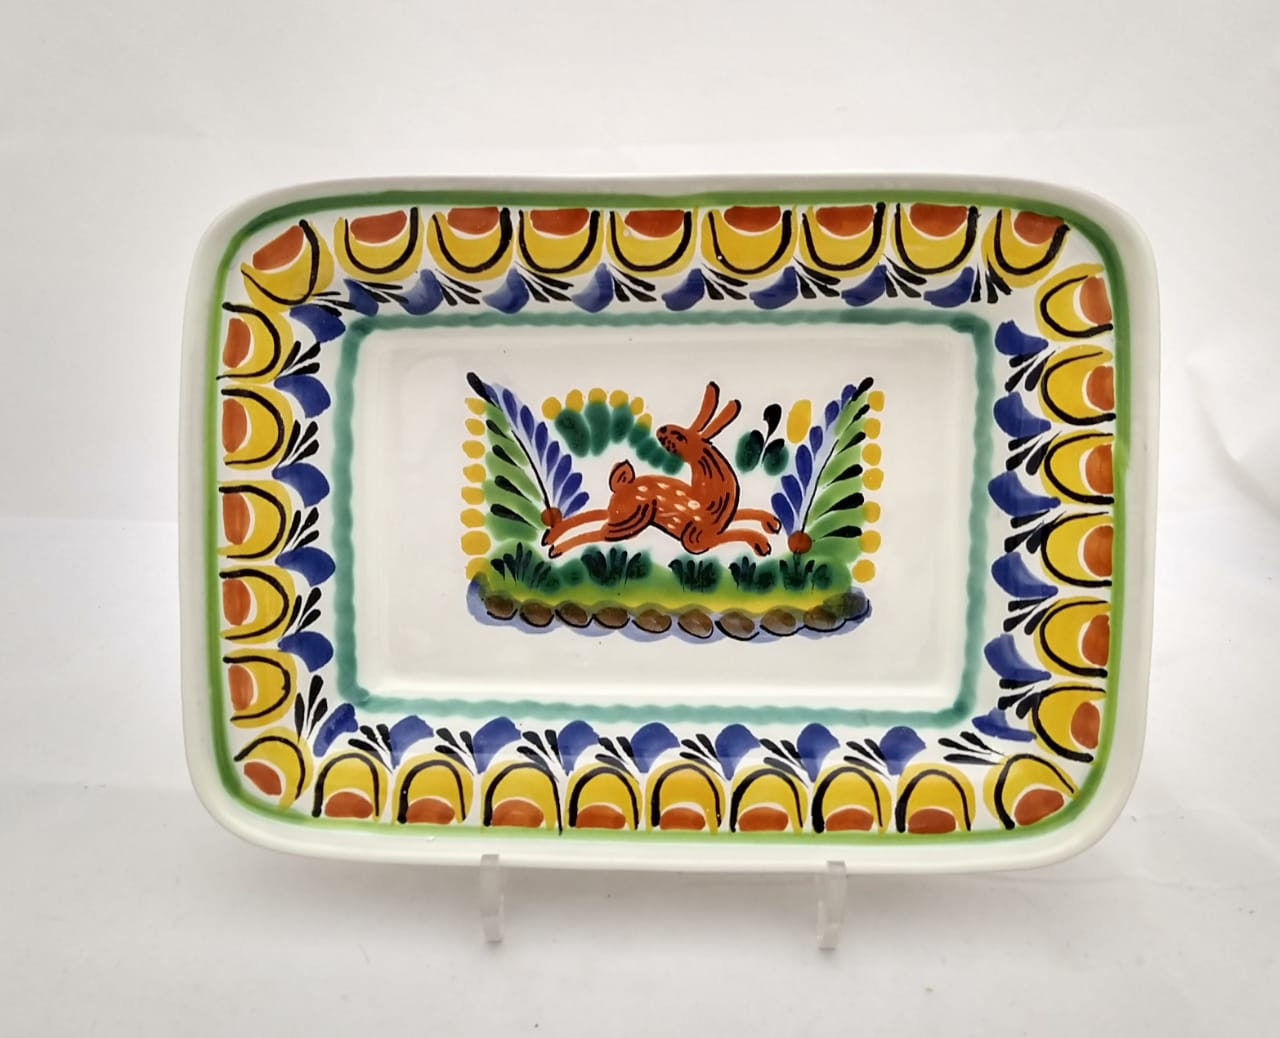 Rabbit Rectangular Bowl 11*7.9